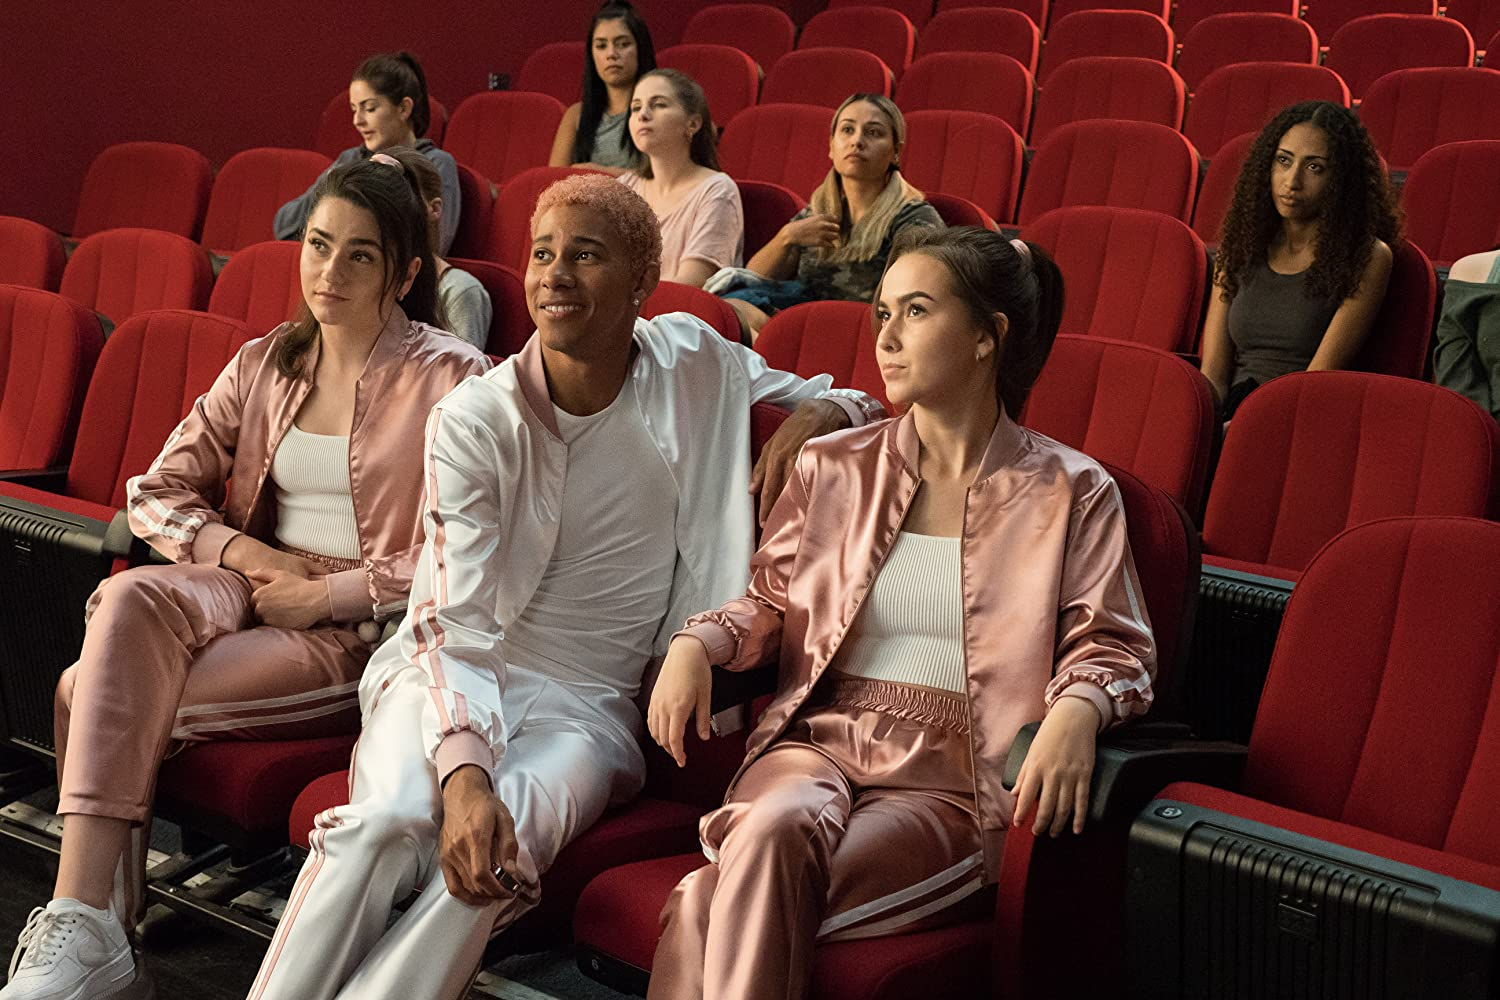 Kalliane Brémault, Briana Andrade-Gomes, and Keiynan Lonsdale in Work It (2020)